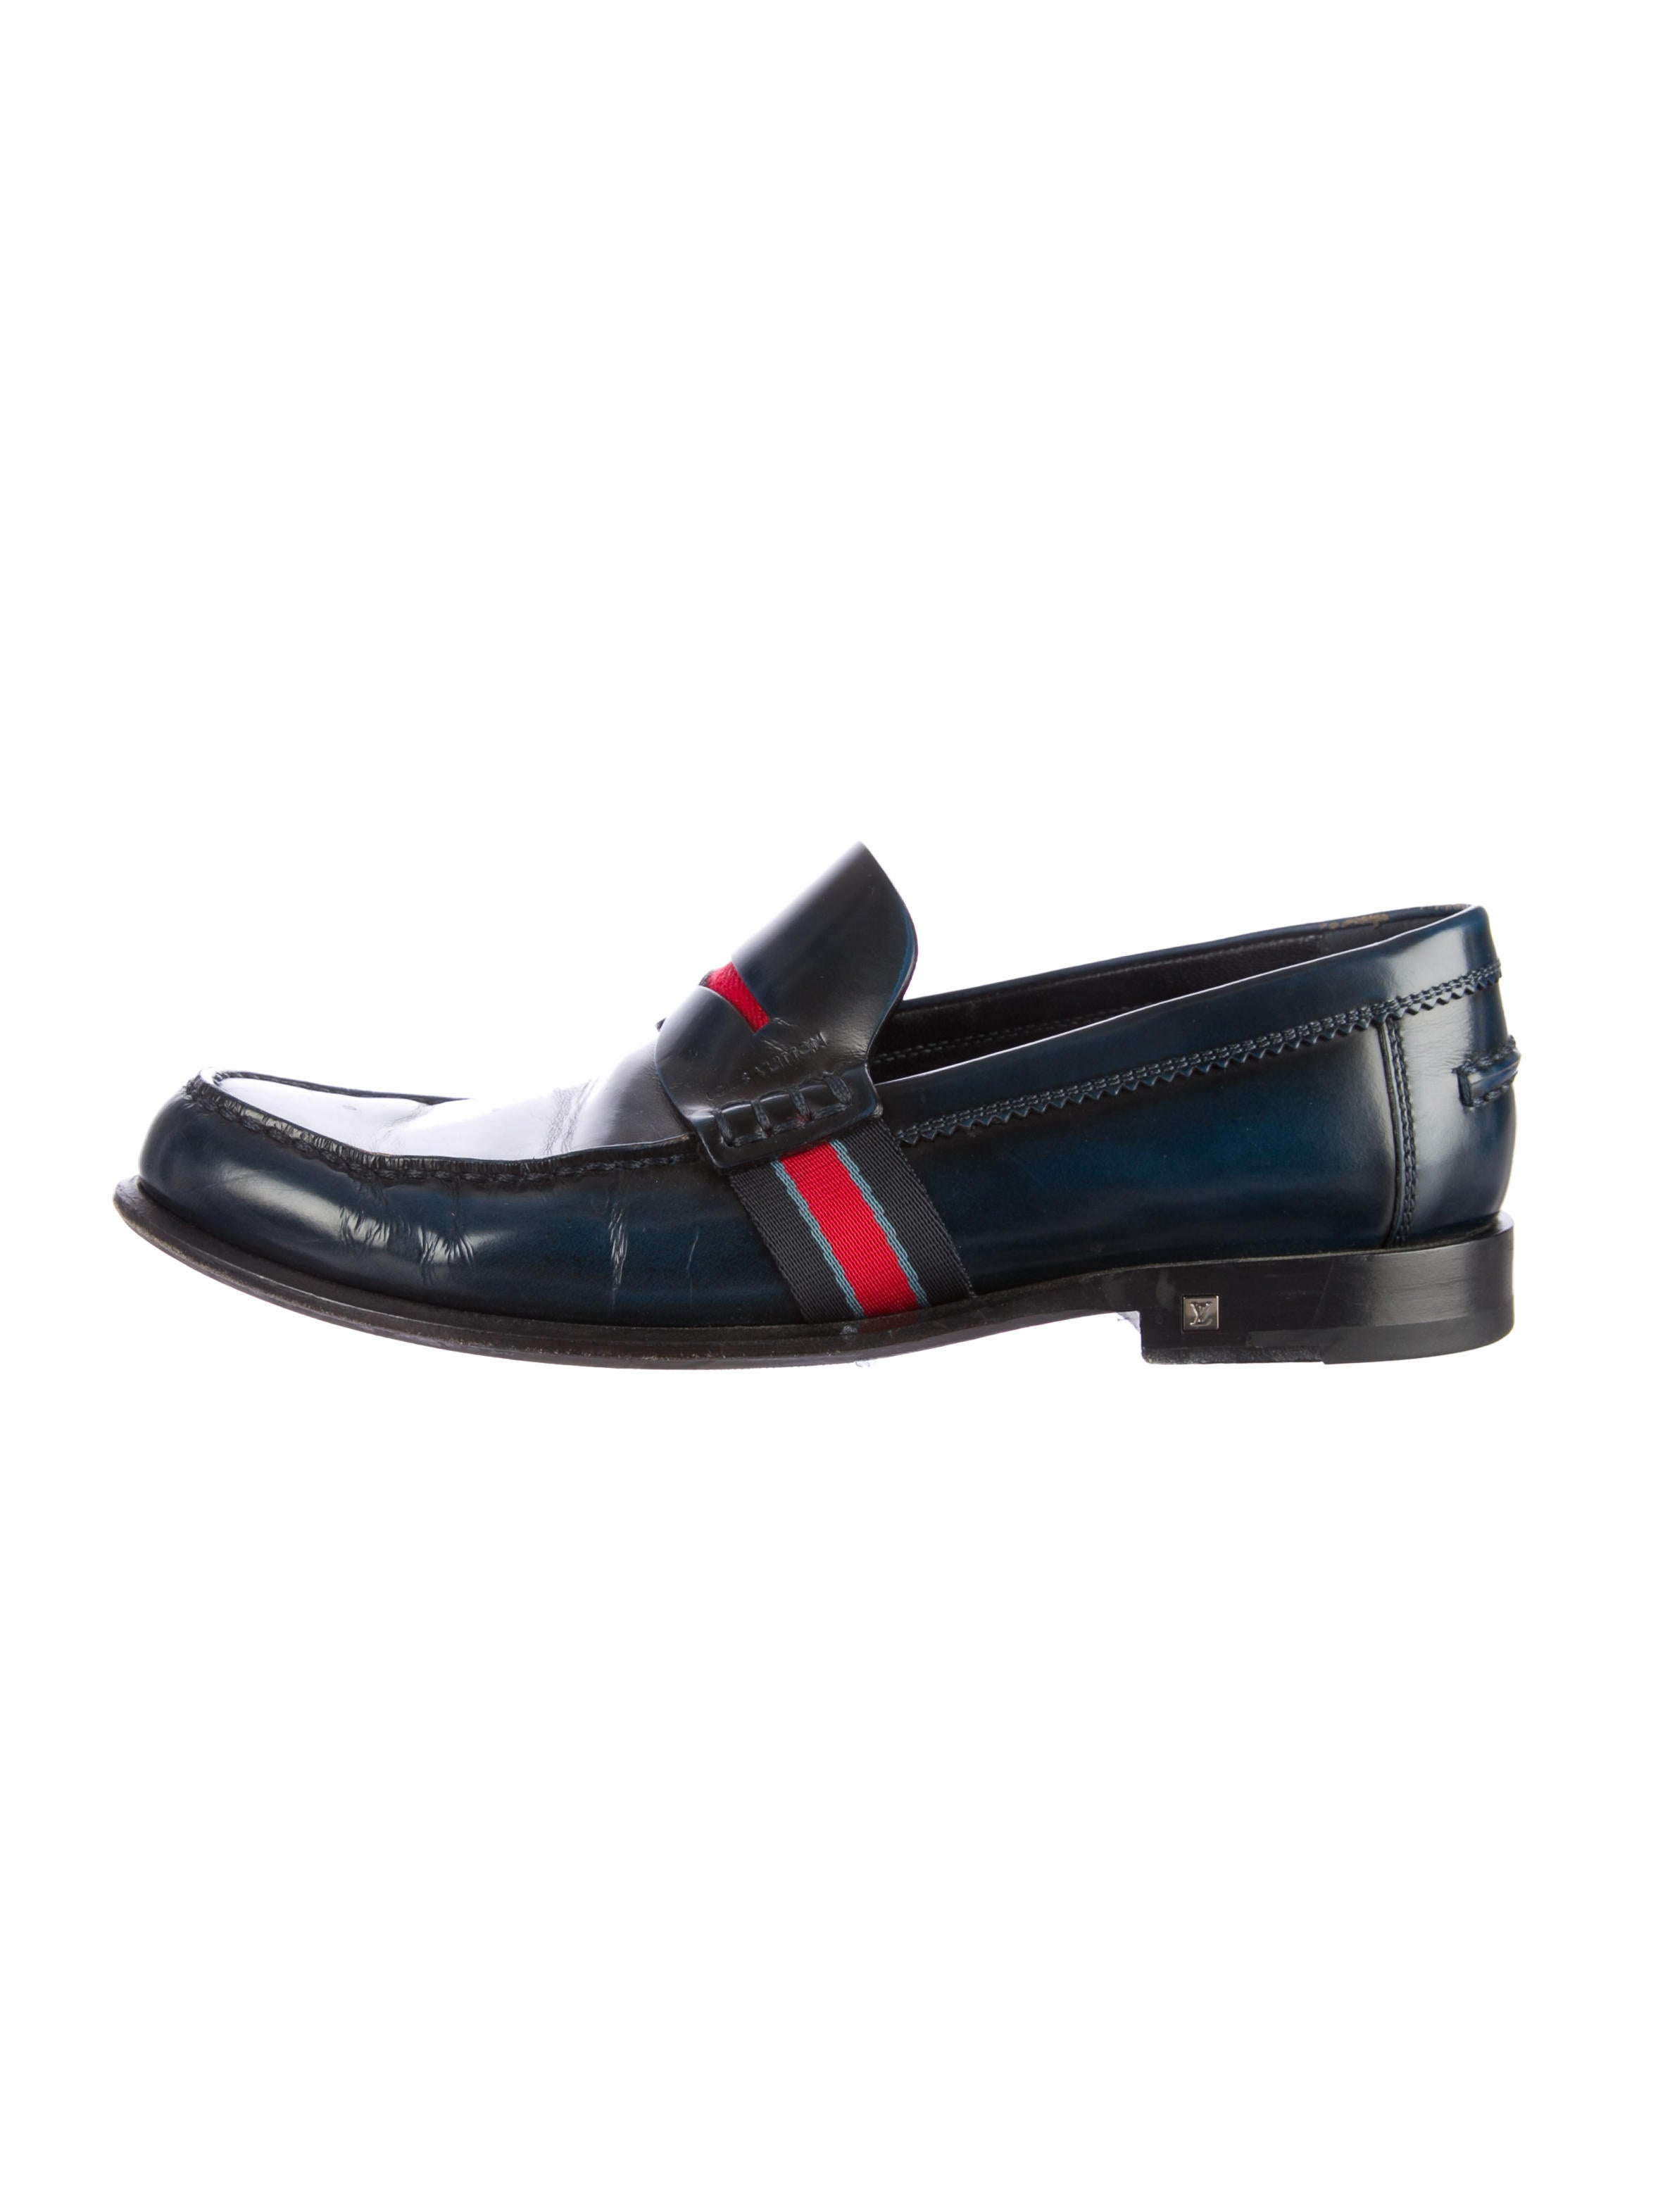 Louis Vuitton Men Loafer Images Sneakers